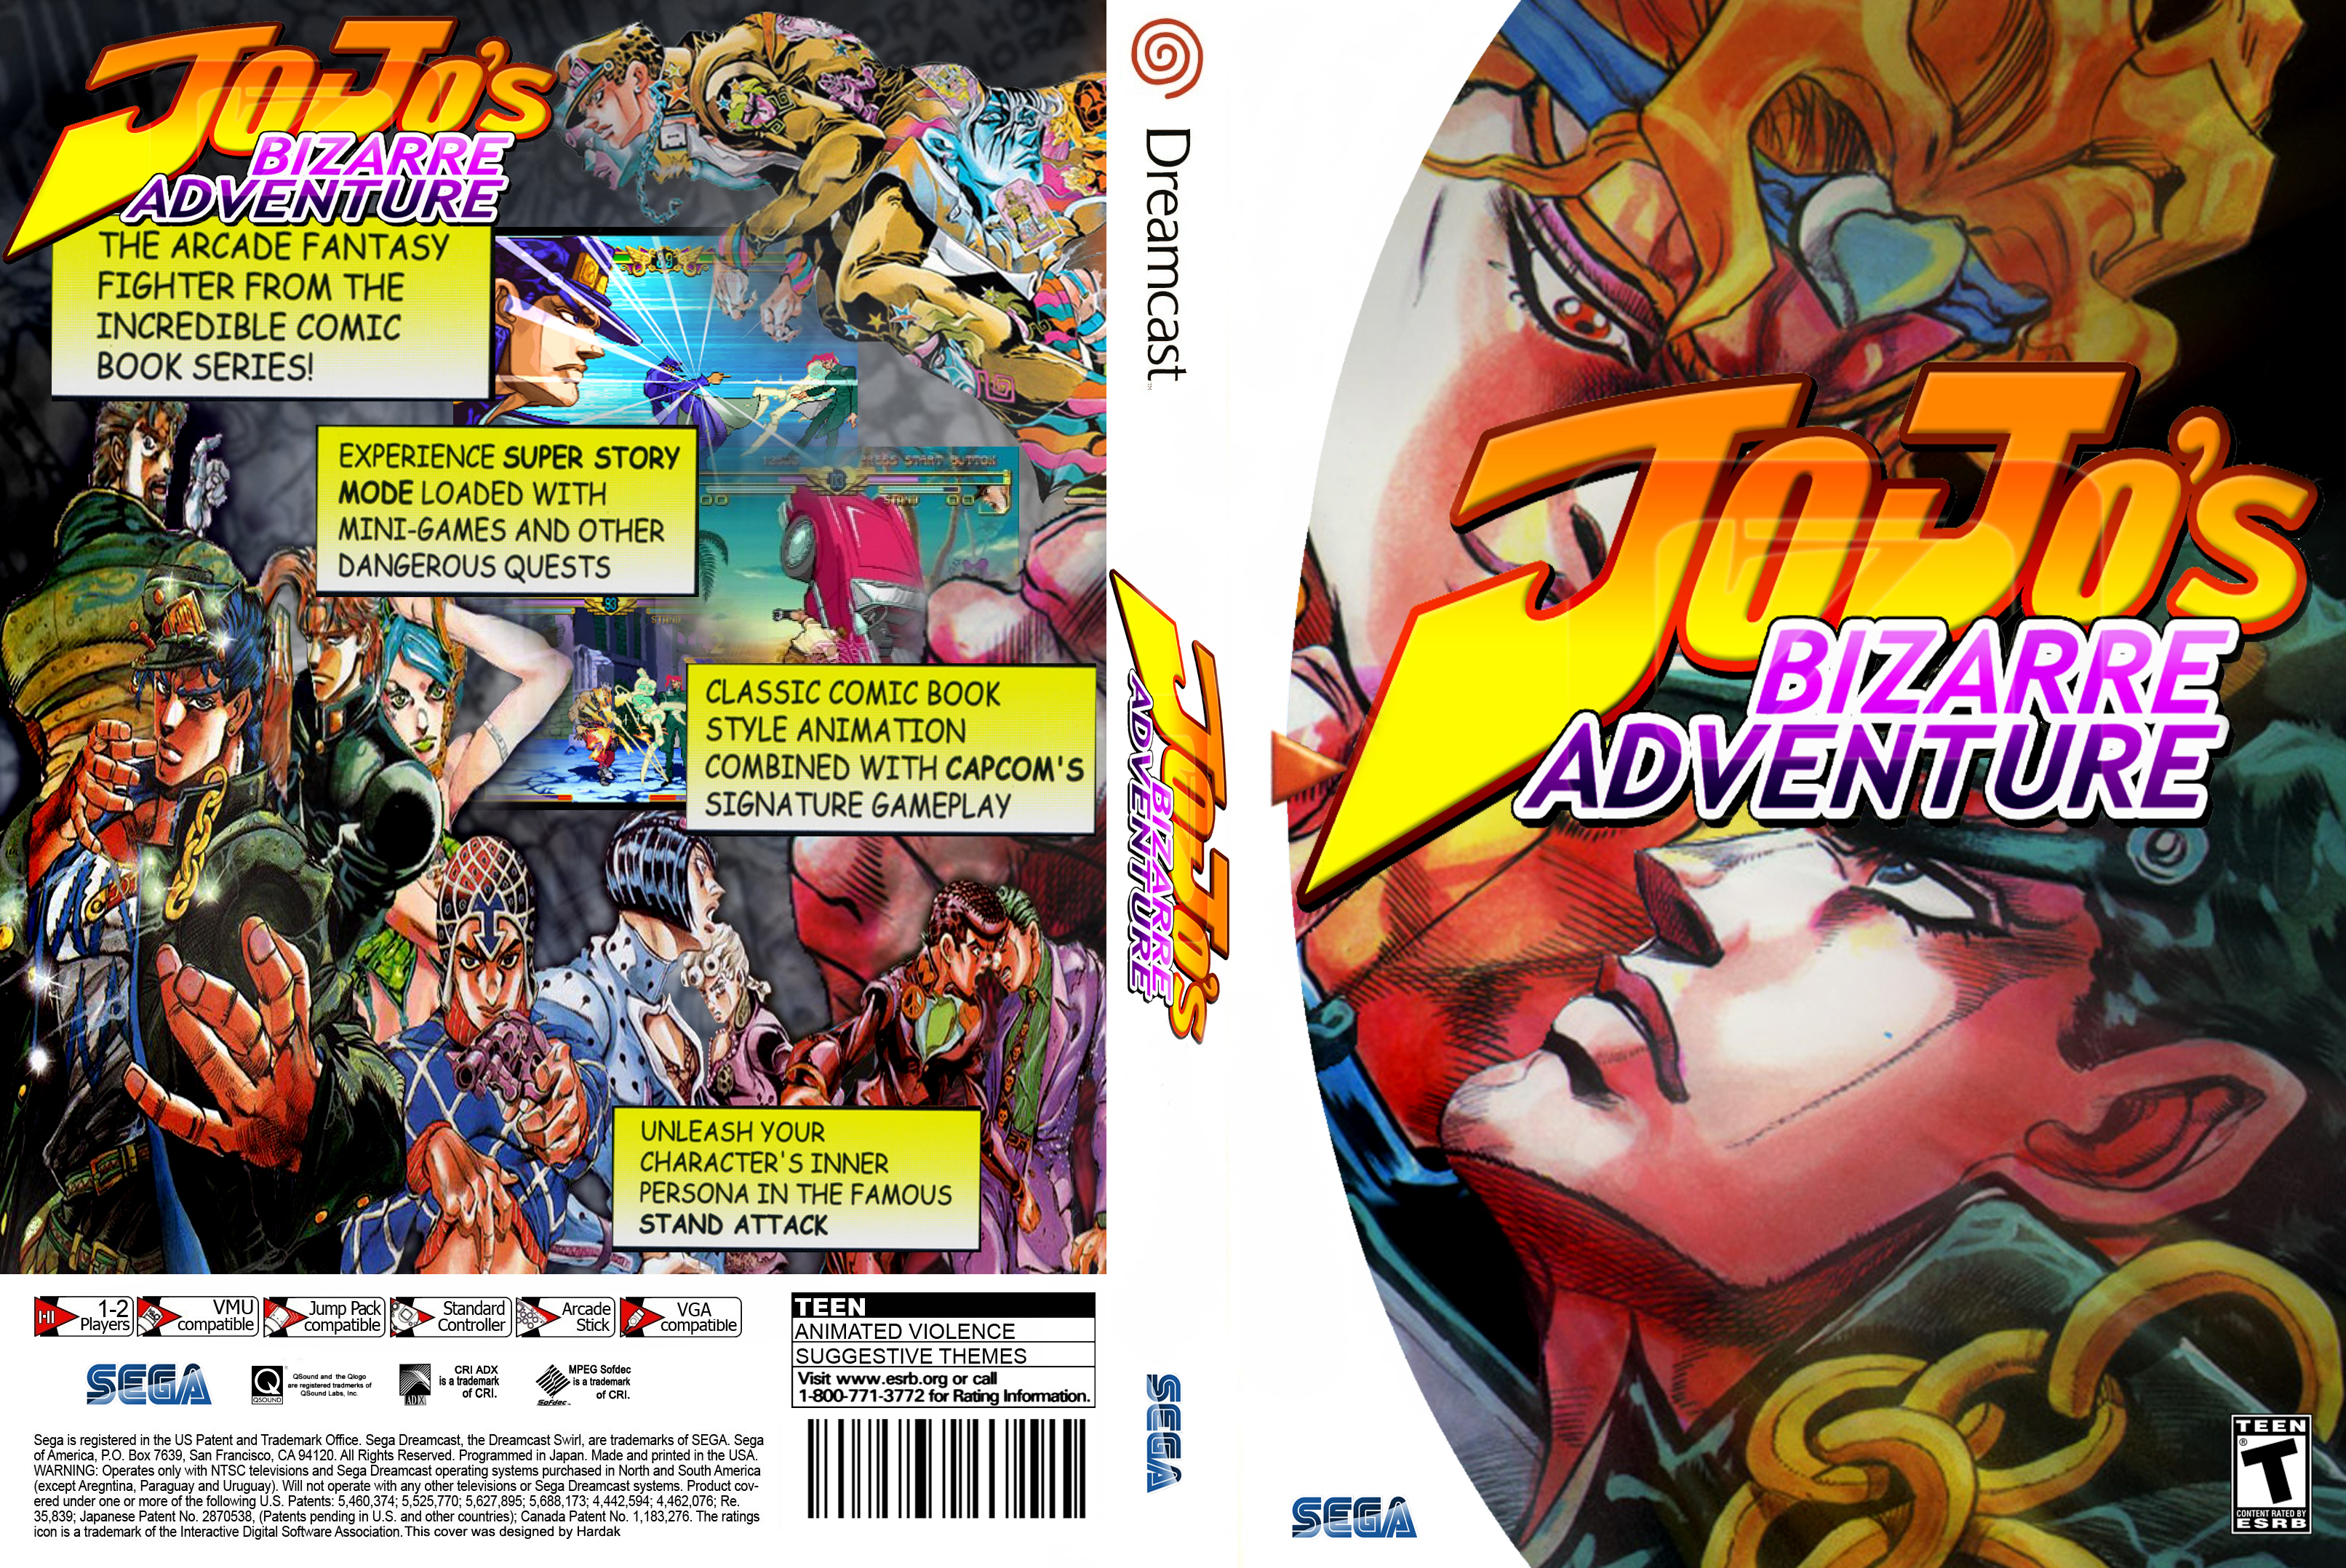 Bases torneo Jojo´s Bizarre Adventure (Dreamcast) – 4Players